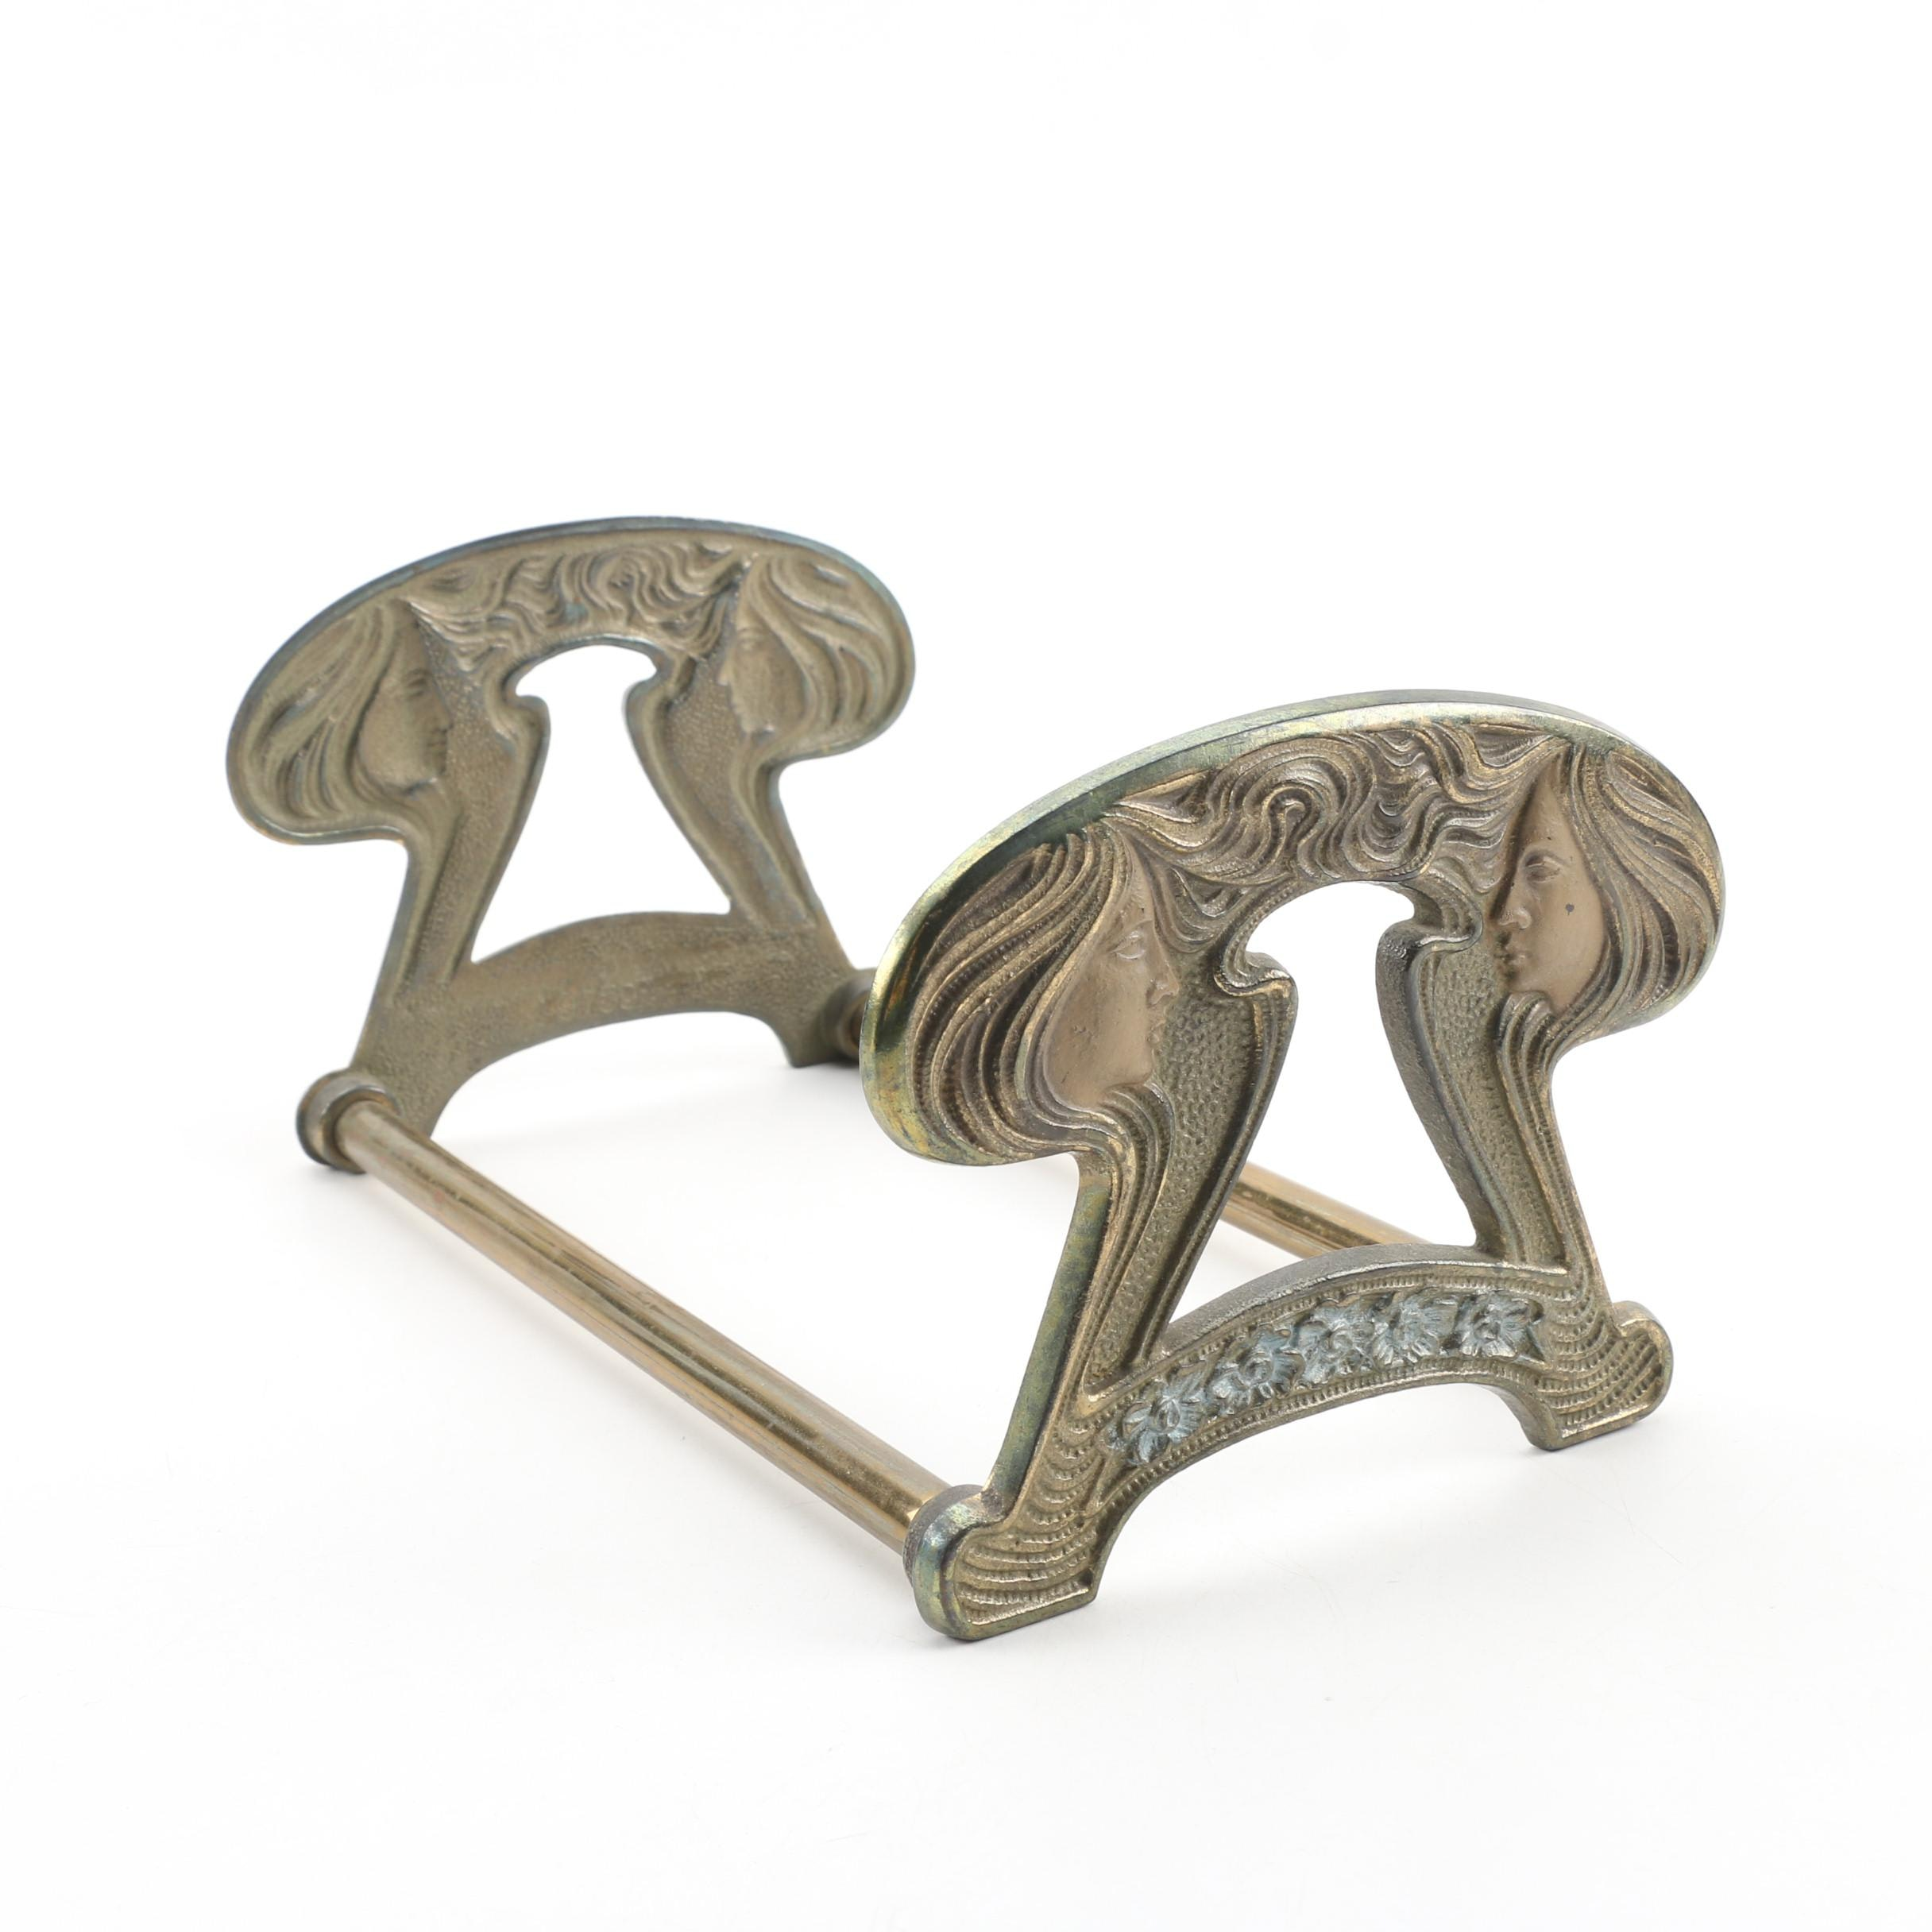 "H.L. Judd Co. Art Nouveau ""Ladies and Keyhole"" Cast Brass Book Rack, c.1920s"